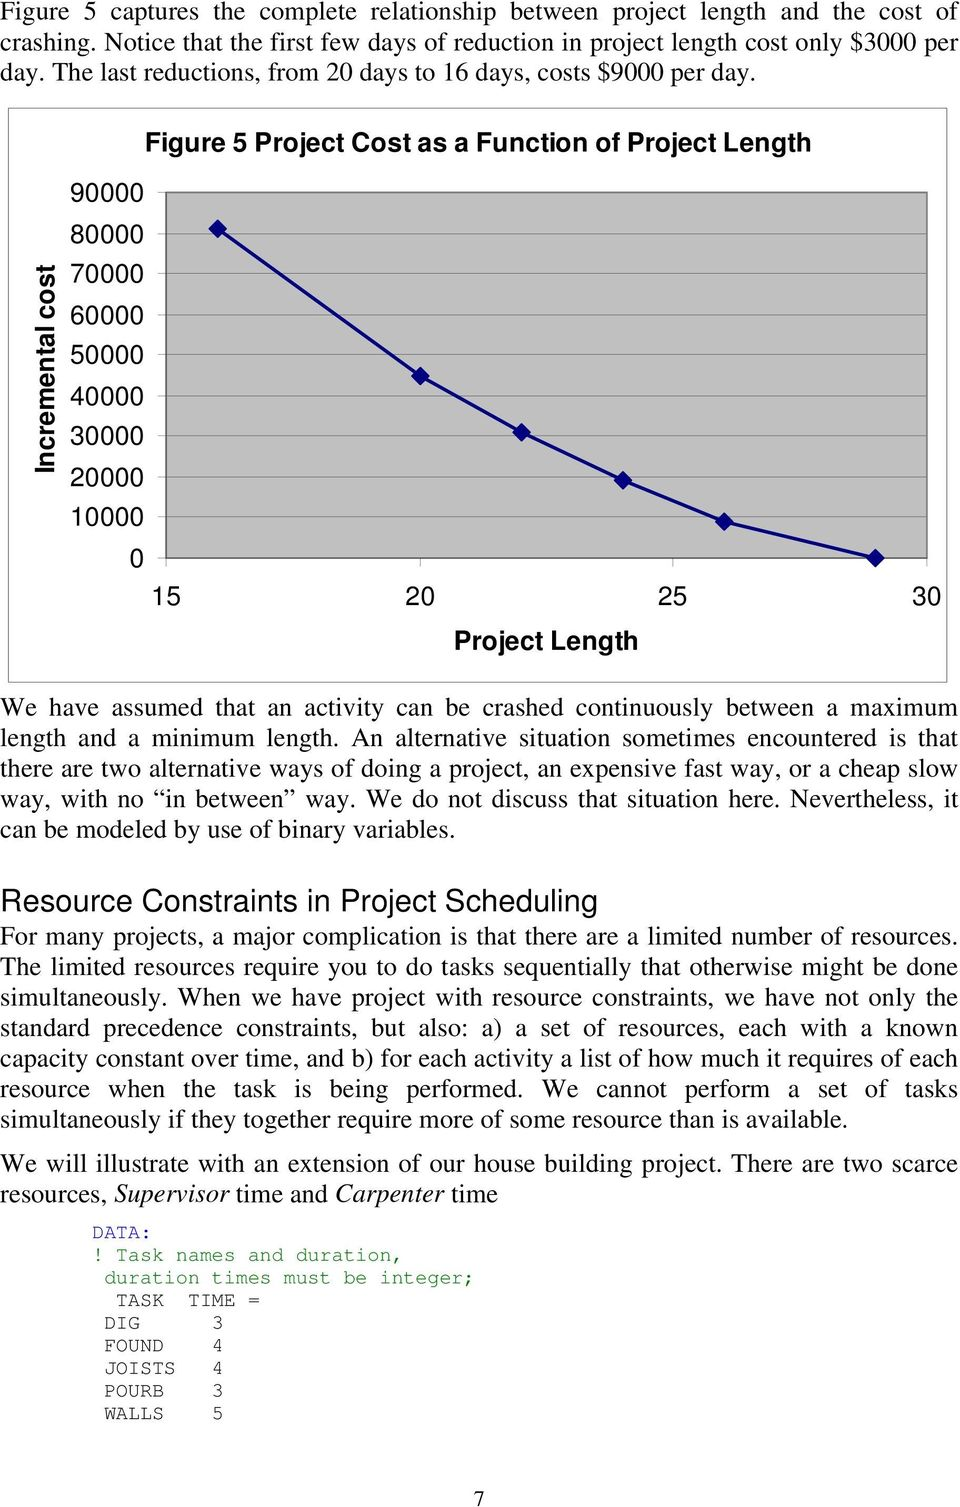 Incremental cost 90000 80000 70000 60000 50000 40000 30000 20000 10000 Figure 5 Project Cost as a Function of Project Length 0 15 20 25 30 Project Length We have assumed that an activity can be